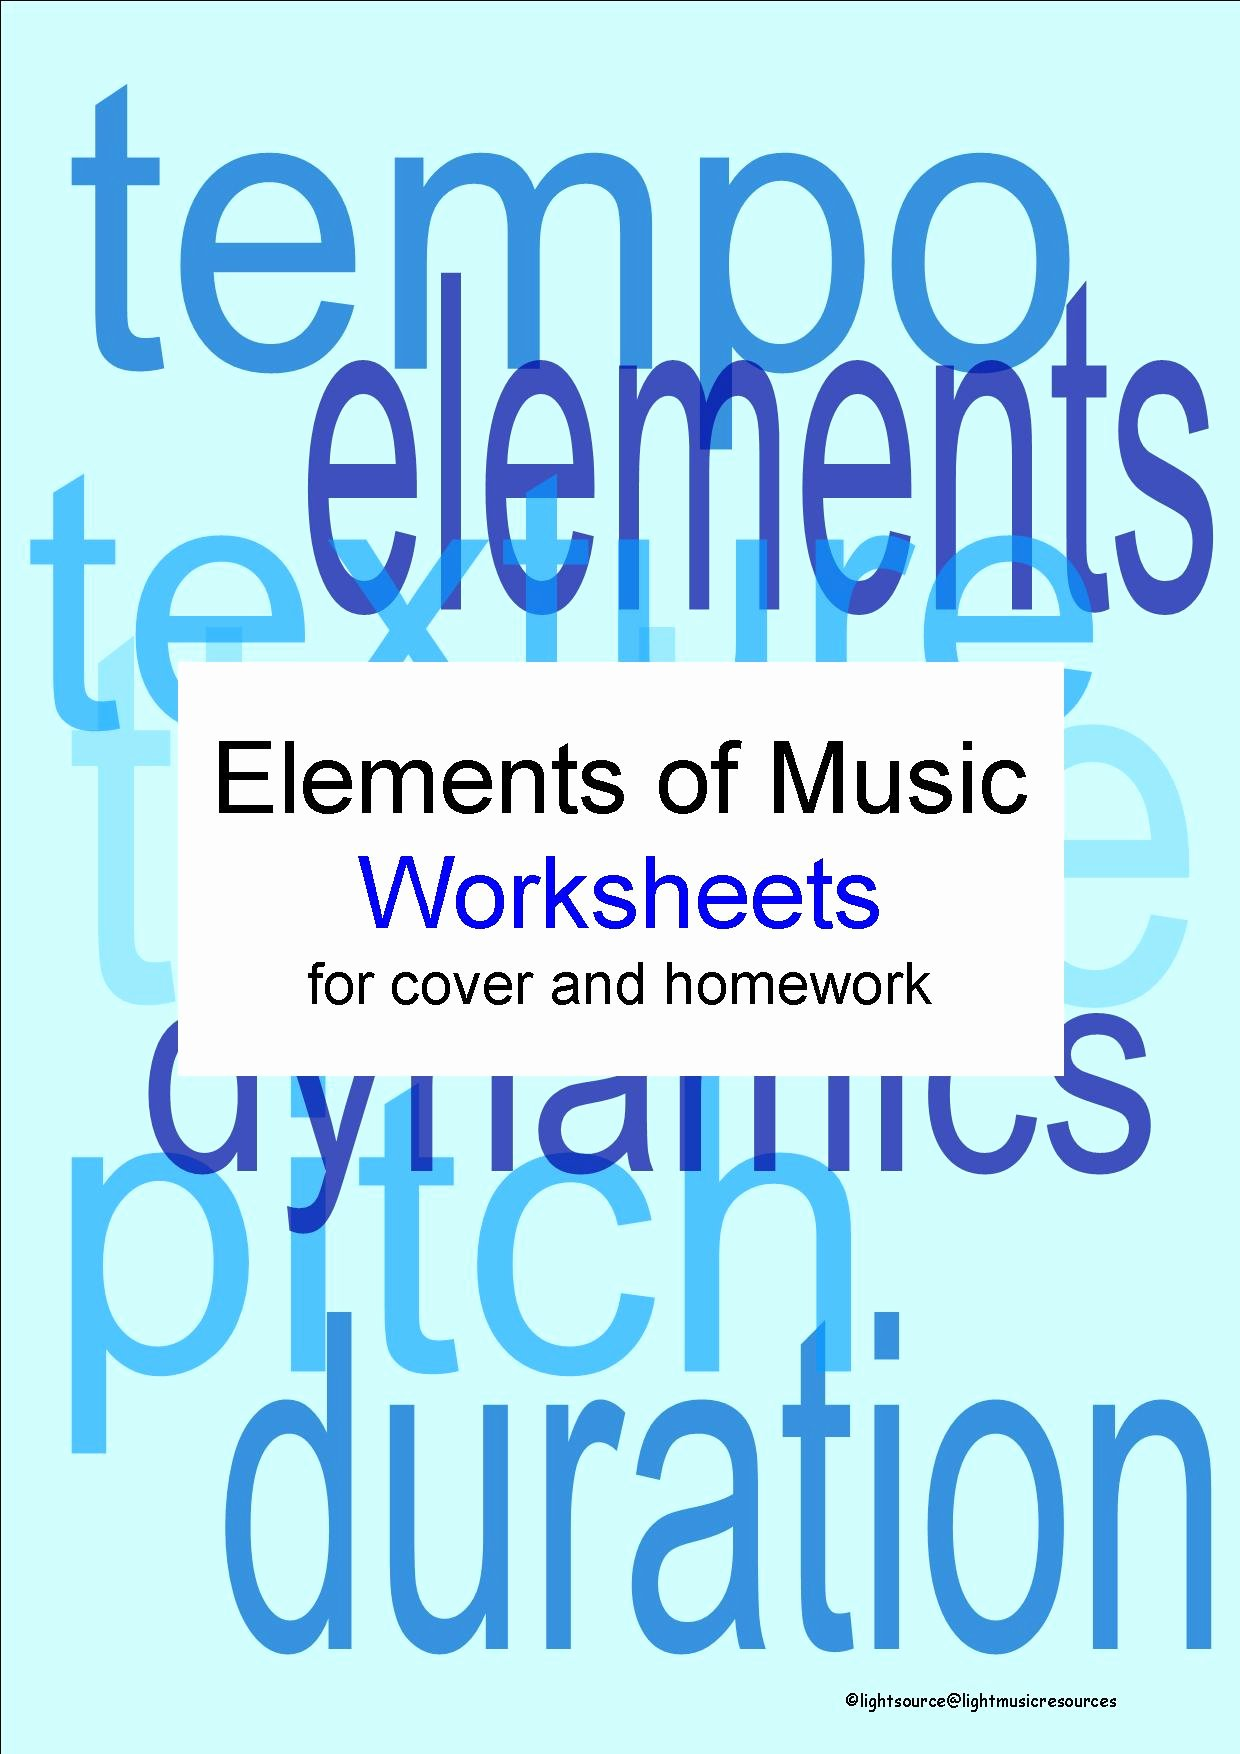 Elements Of Music Worksheet New the Elements Of Music 1 Factsheet and 2 Worksheets by